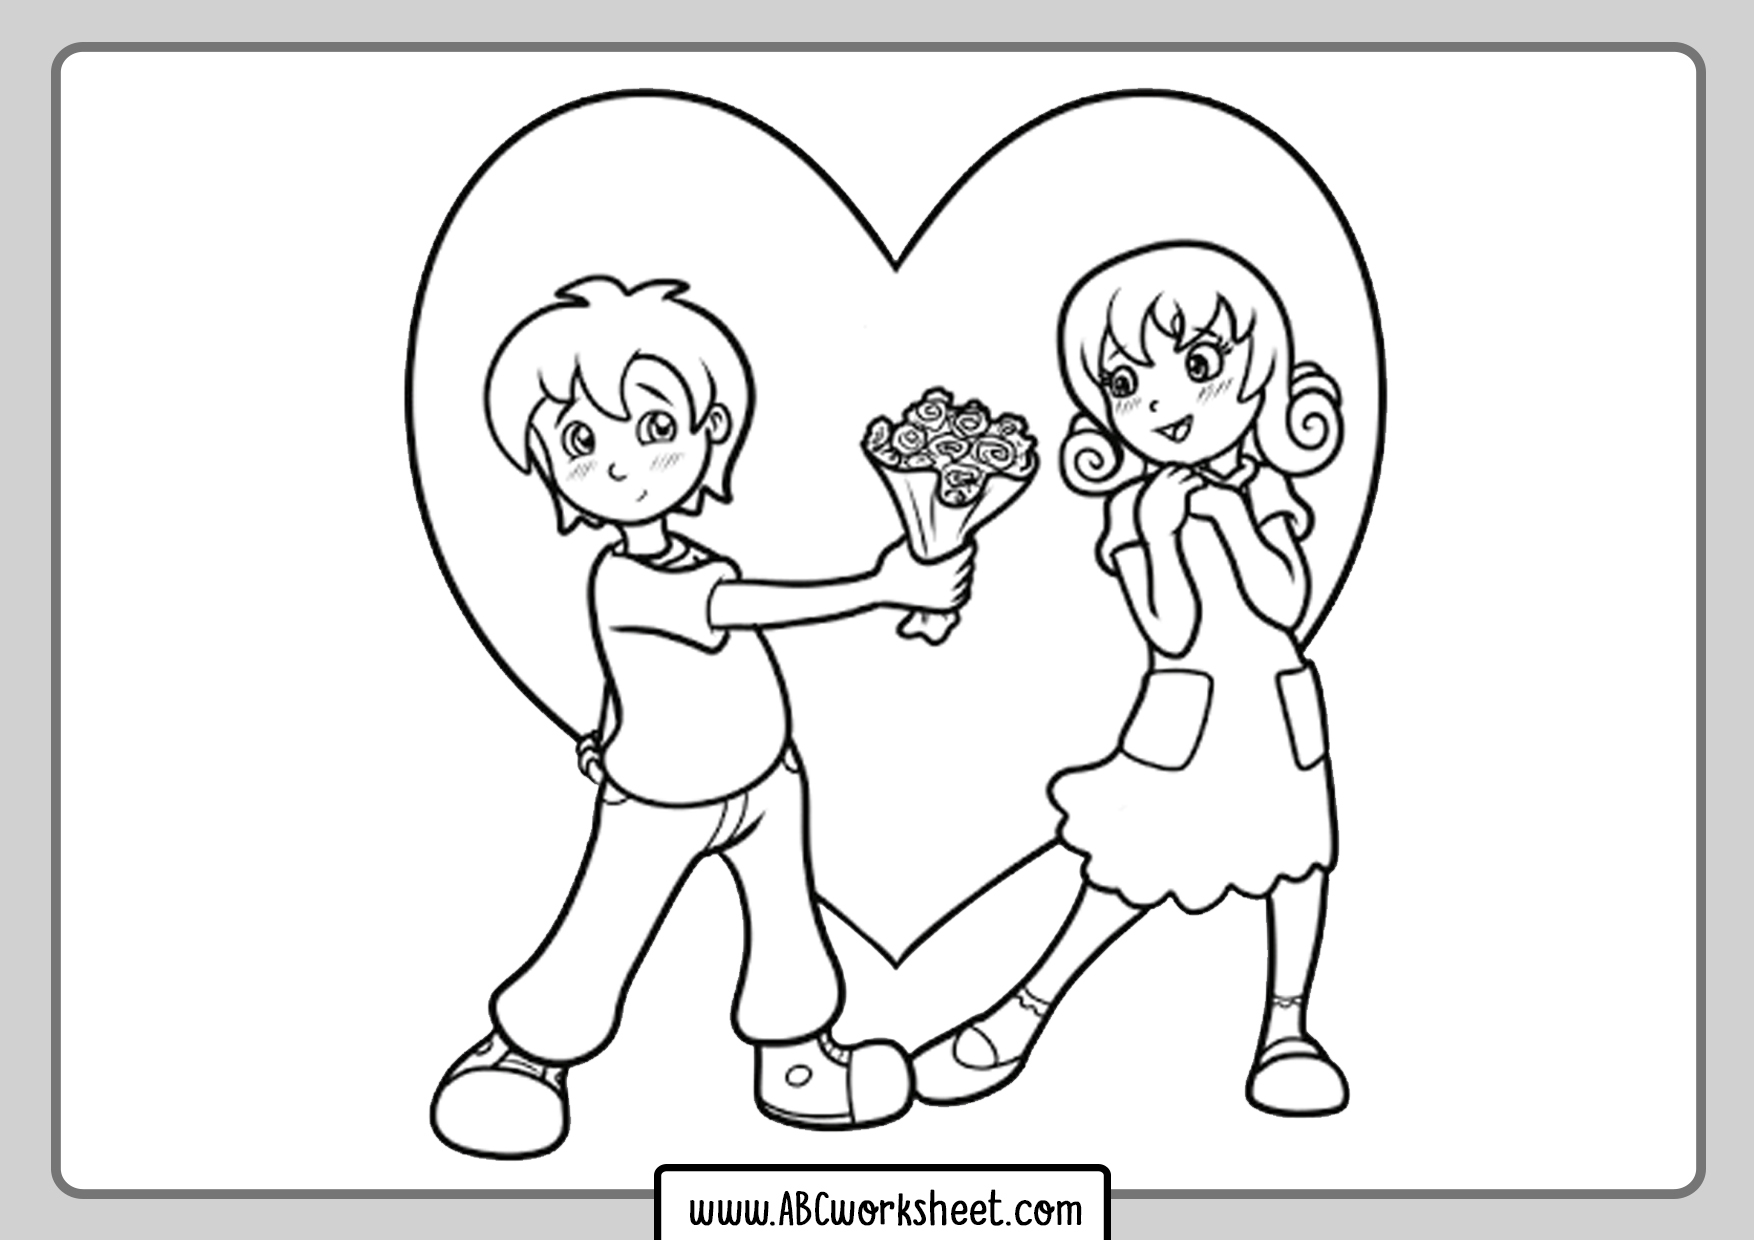 Kids In Love Coloring Page